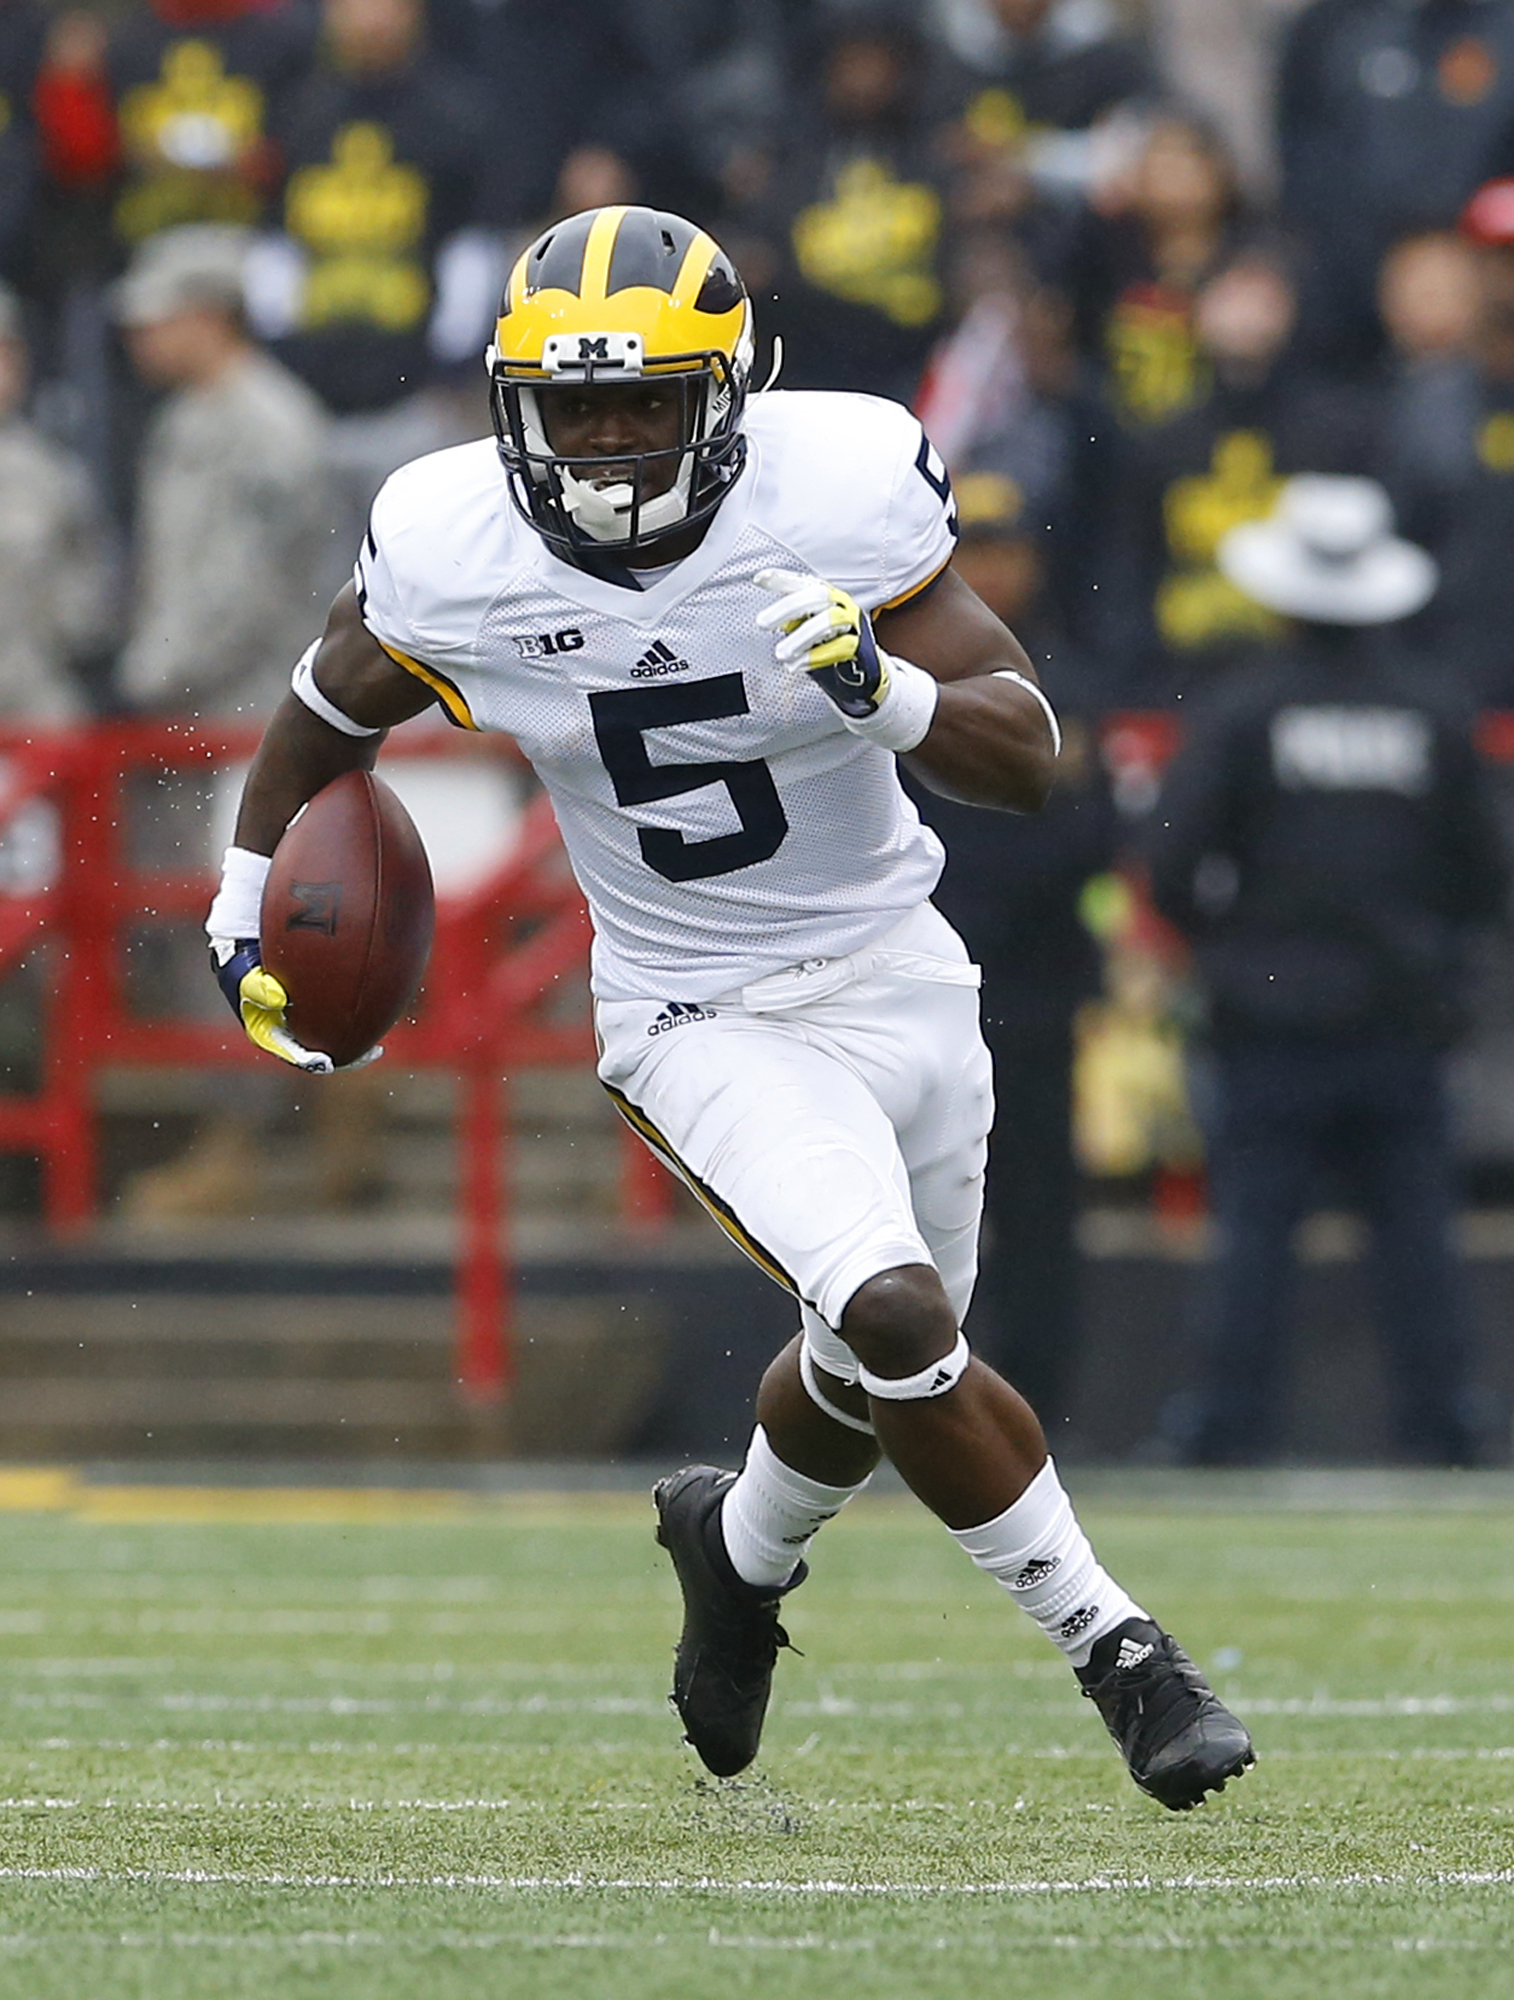 FILE- In this Oct. 3, 2015, file photo, Michigan's Jabrill Peppers carries the ball on a punt return in the first half of an NCAA college football game against Maryland, in College Park, Md. The pool of candidates for the Heisman Trophy is deep. Stanford'